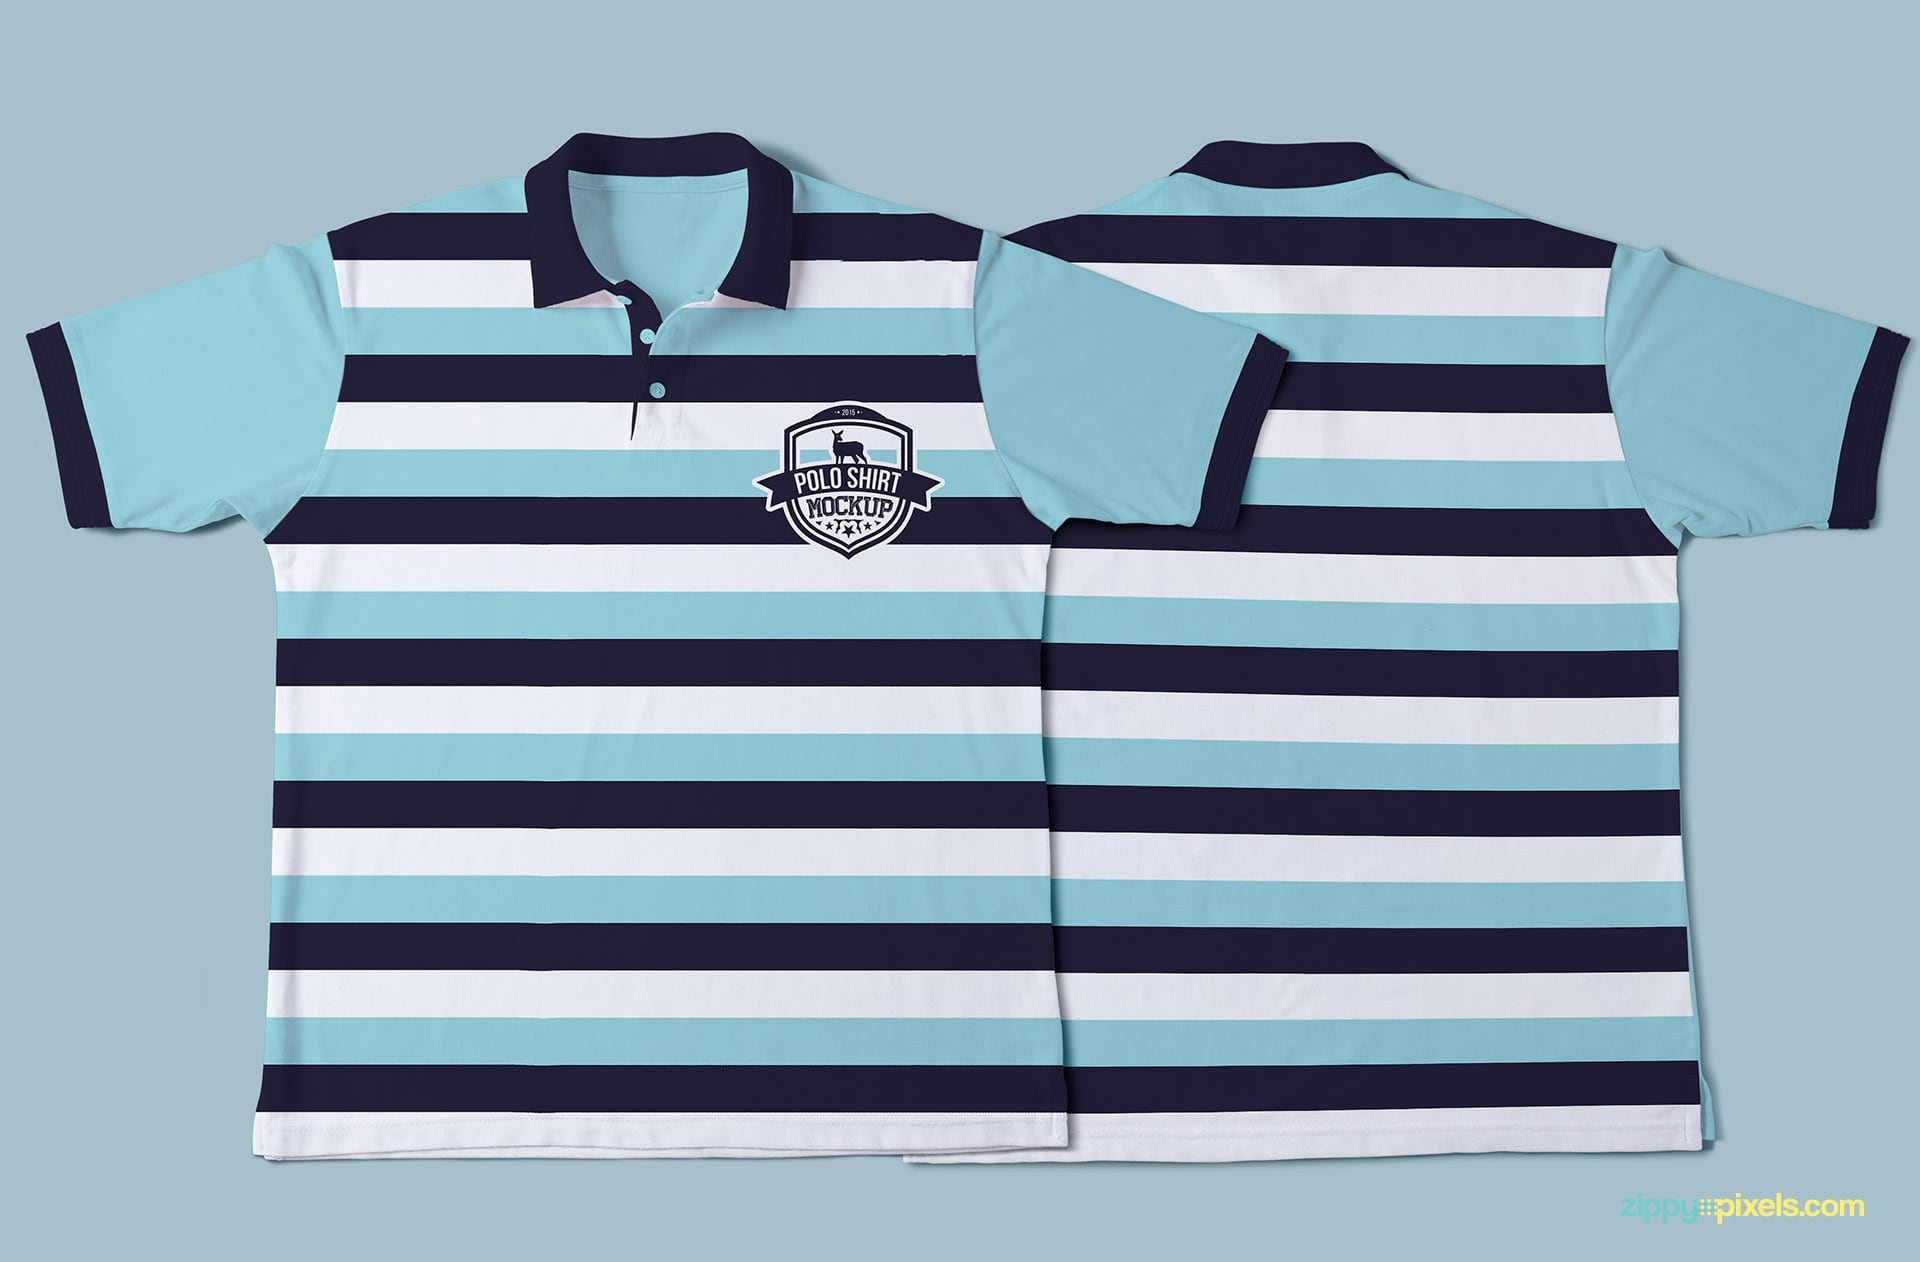 Amazing polo shirt mockup